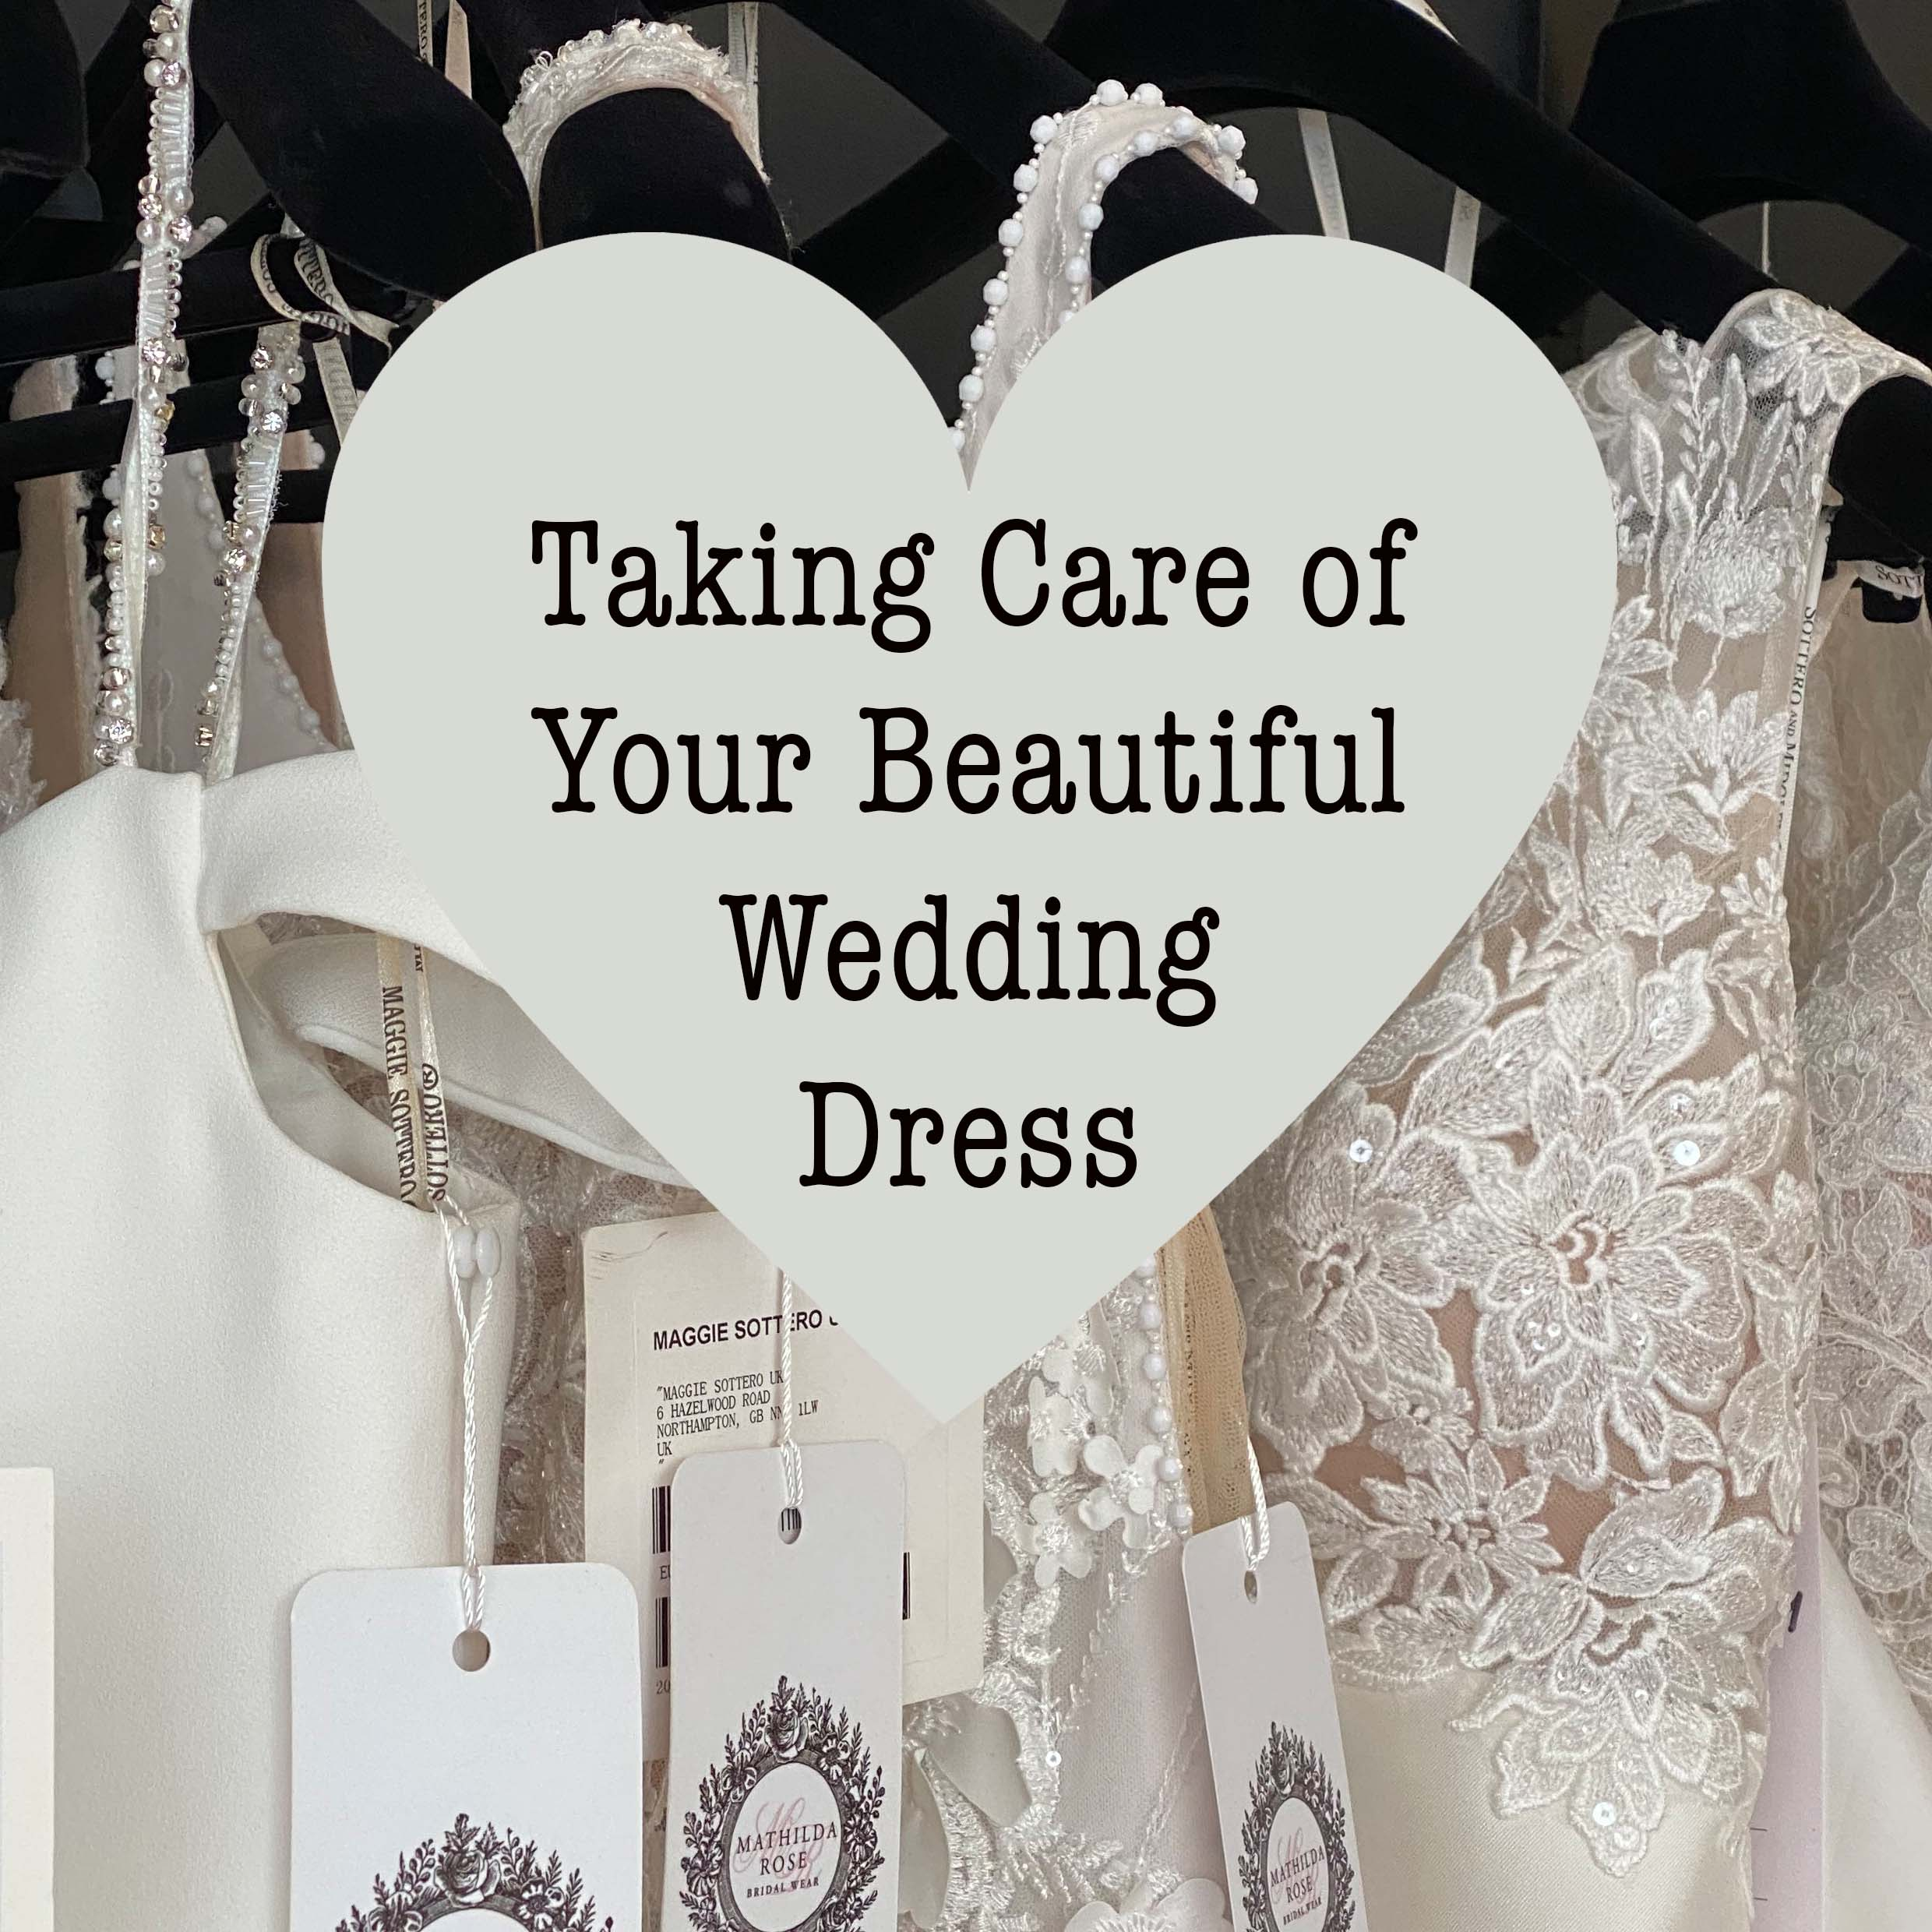 Taking care of your beautiful wedding dress if your wedding is postponed